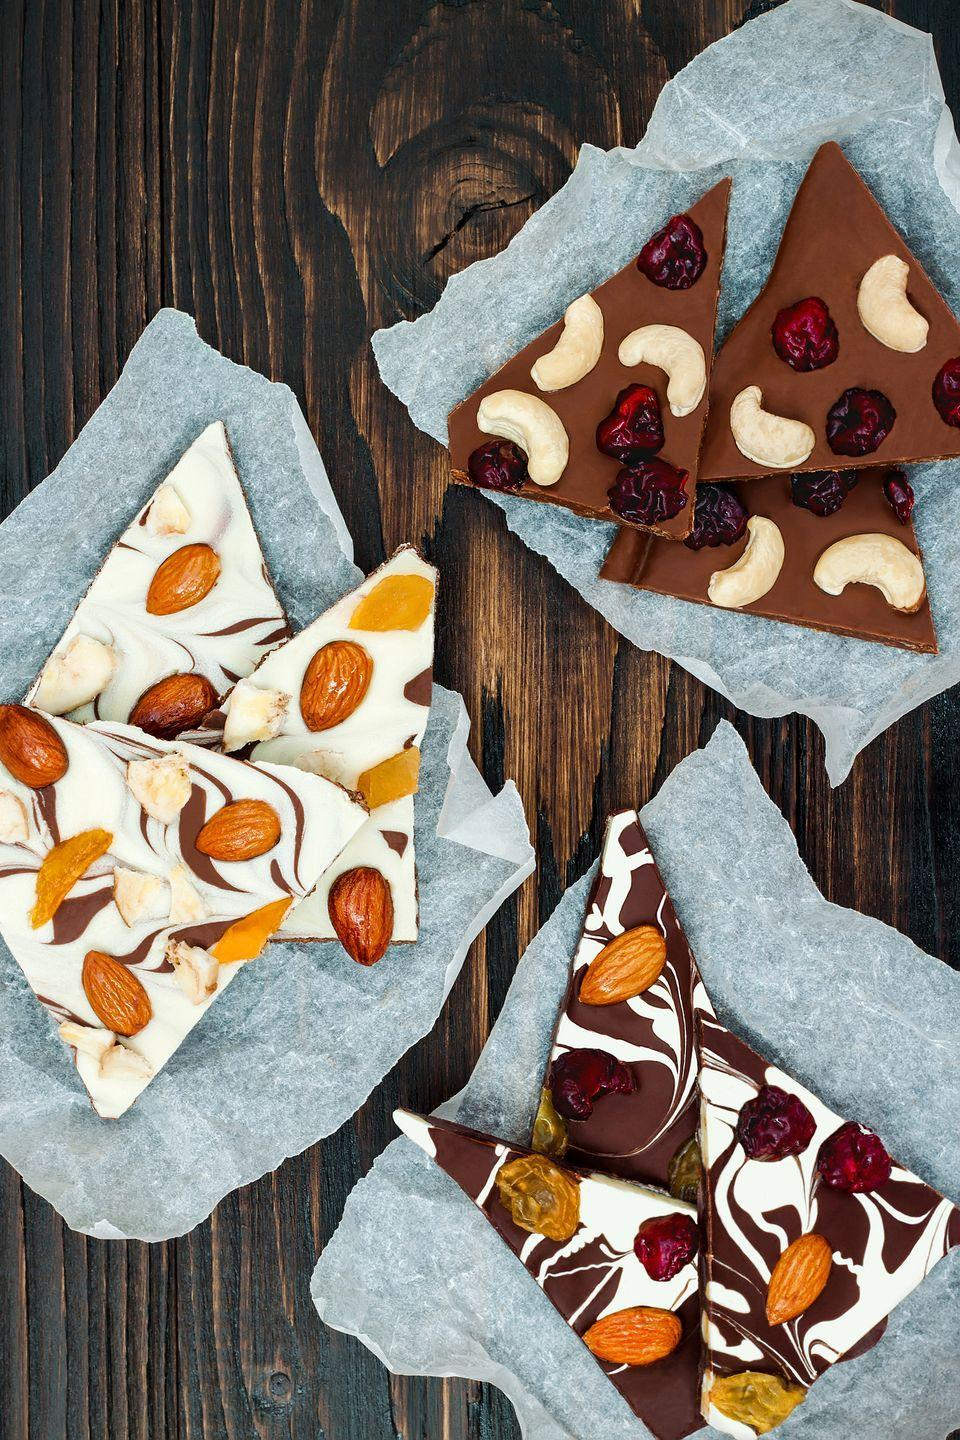 """<p>The sweetest thing about these sweet treats? You know everything that went into them.</p><p><strong><a href=""""https://www.countryliving.com/food-drinks/recipes/a32386/marbled-chocolate-bark-recipe-122506/"""" rel=""""nofollow noopener"""" target=""""_blank"""" data-ylk=""""slk:Get the recipe"""" class=""""link rapid-noclick-resp"""">Get the recipe</a>.</strong></p>"""